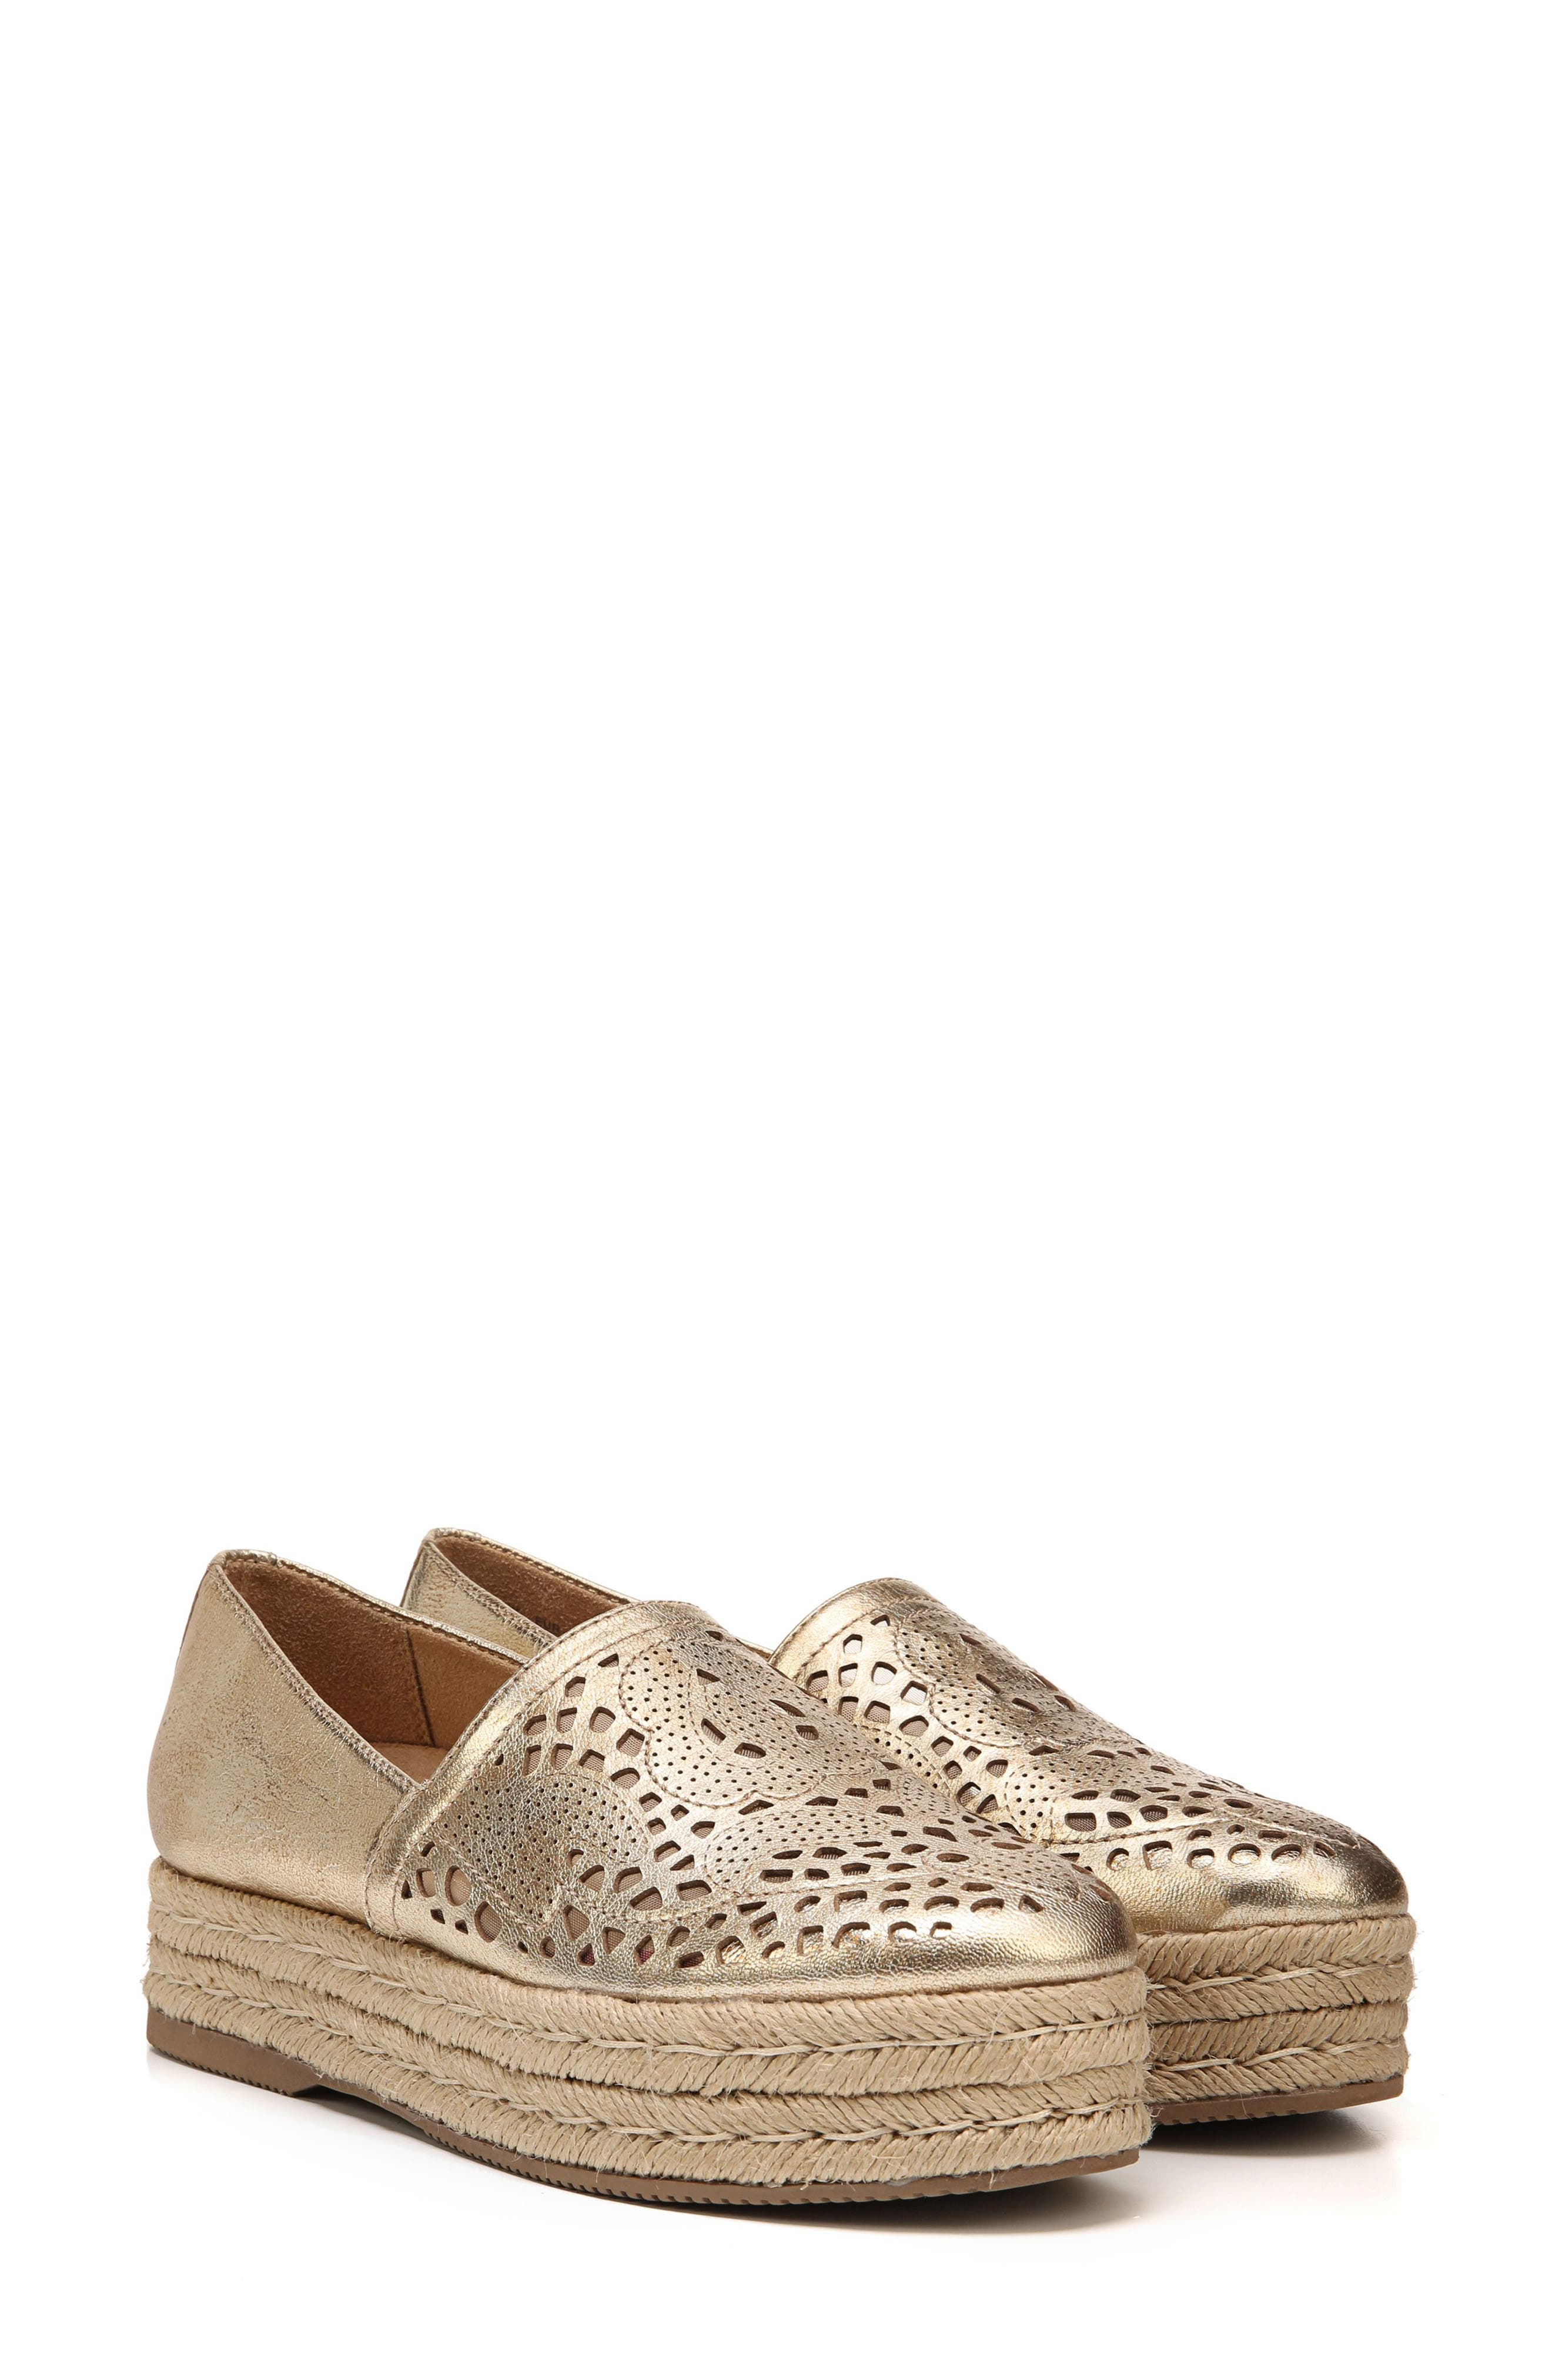 Thea Perforated Platform Espadrille,                             Alternate thumbnail 9, color,                             Platino Leather